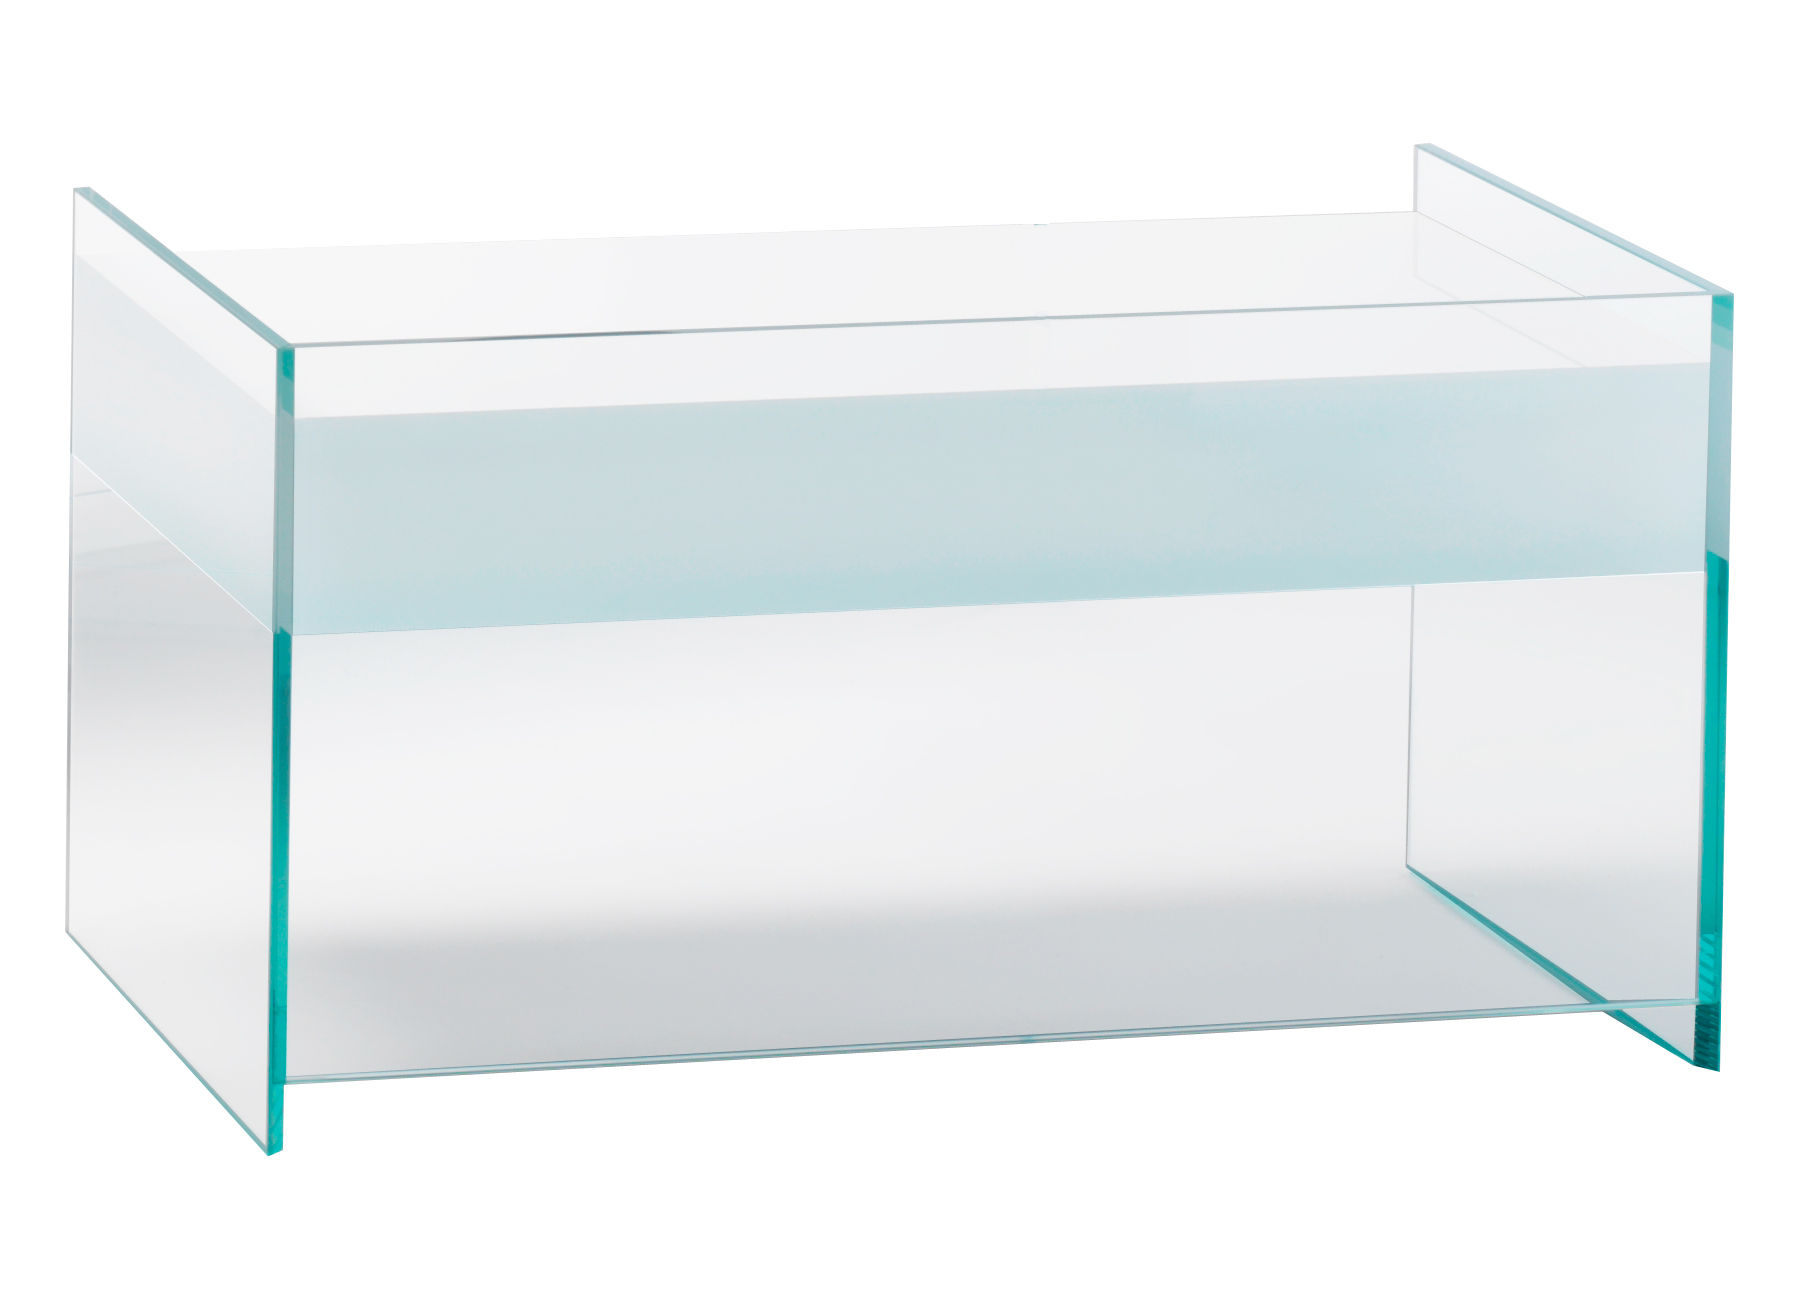 Mobilier - Tables de chevet - Table d'appoint Float / 1 tiroir - L 63 x H 45 cm - Glas Italia - Blanc - Cristal, Wengé